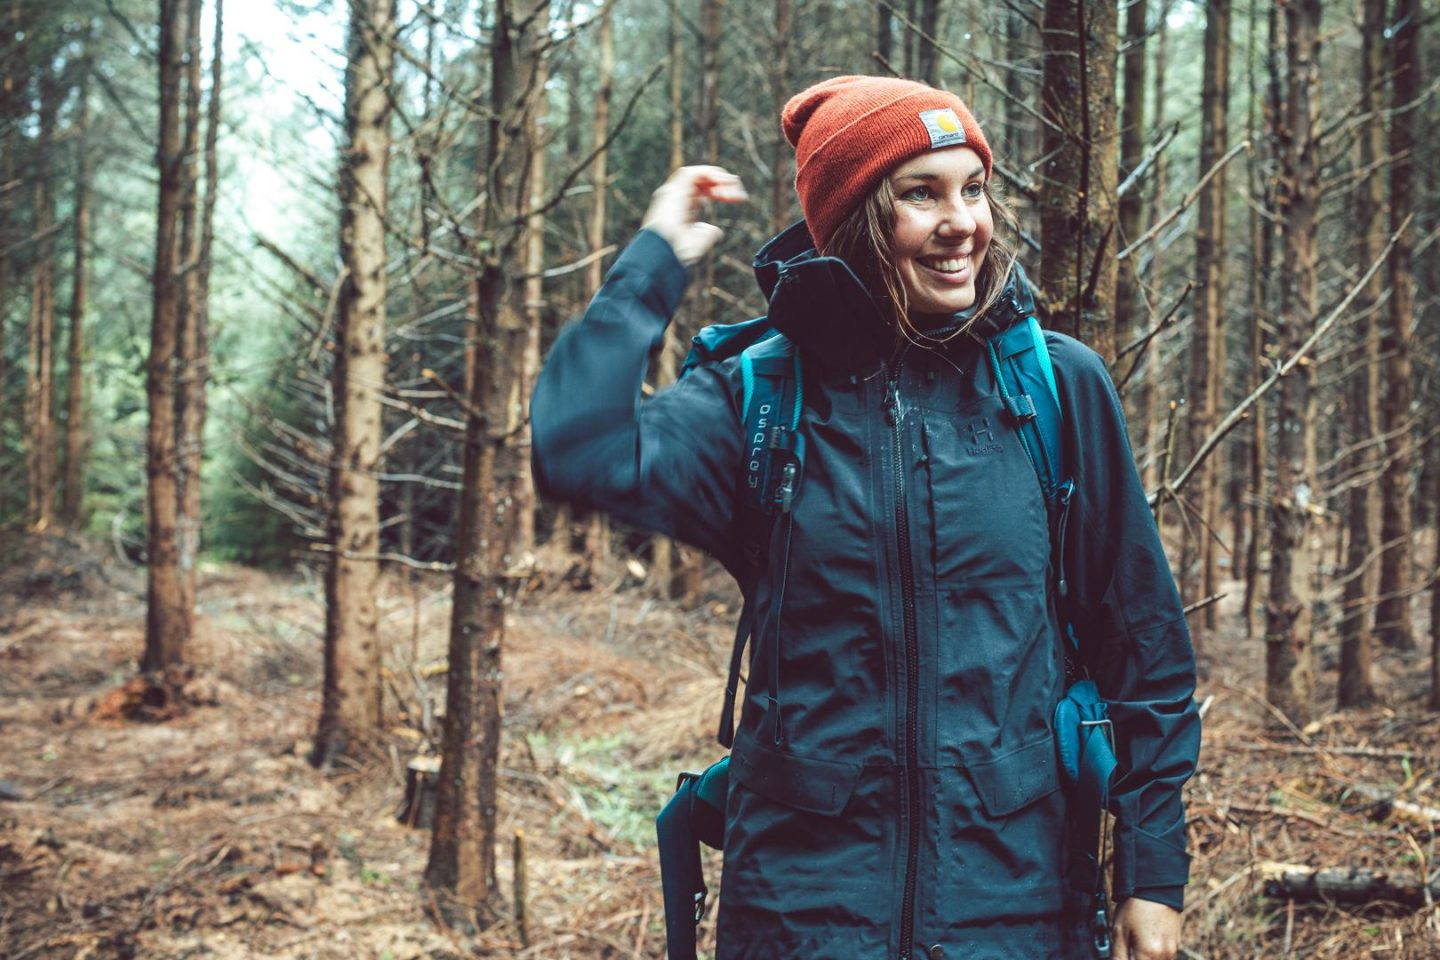 Haglofs Grym Evo Jacket Review The Girl Outdoors Sian Lewis